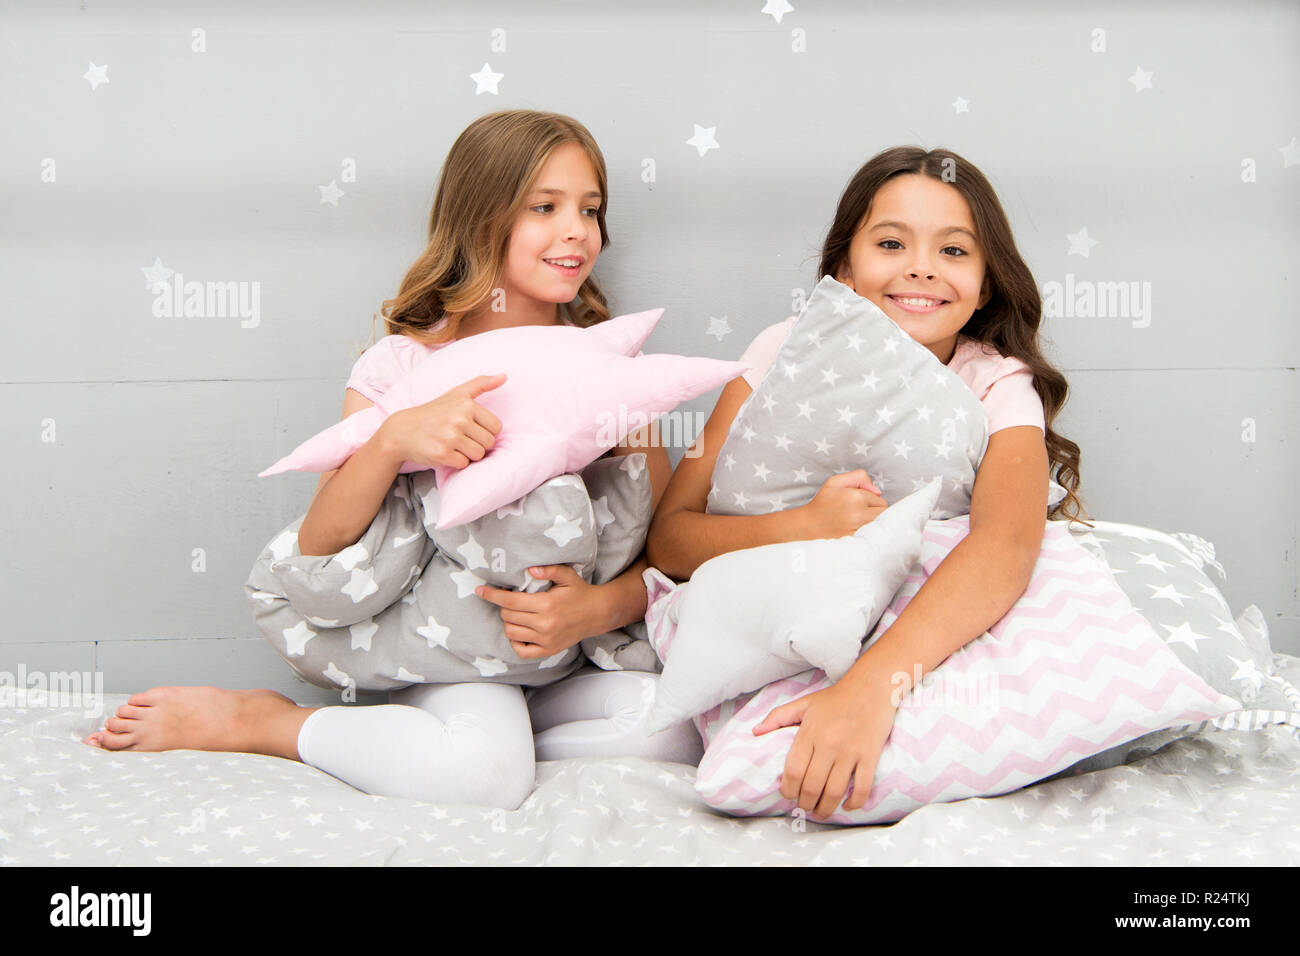 Girls kids hug cute pillow. Cute kids pillows they will love to cuddle. Find decorative pillows and add fun to room. Happy childhood cozy home. Adorable cushions for your child room. - Stock Image